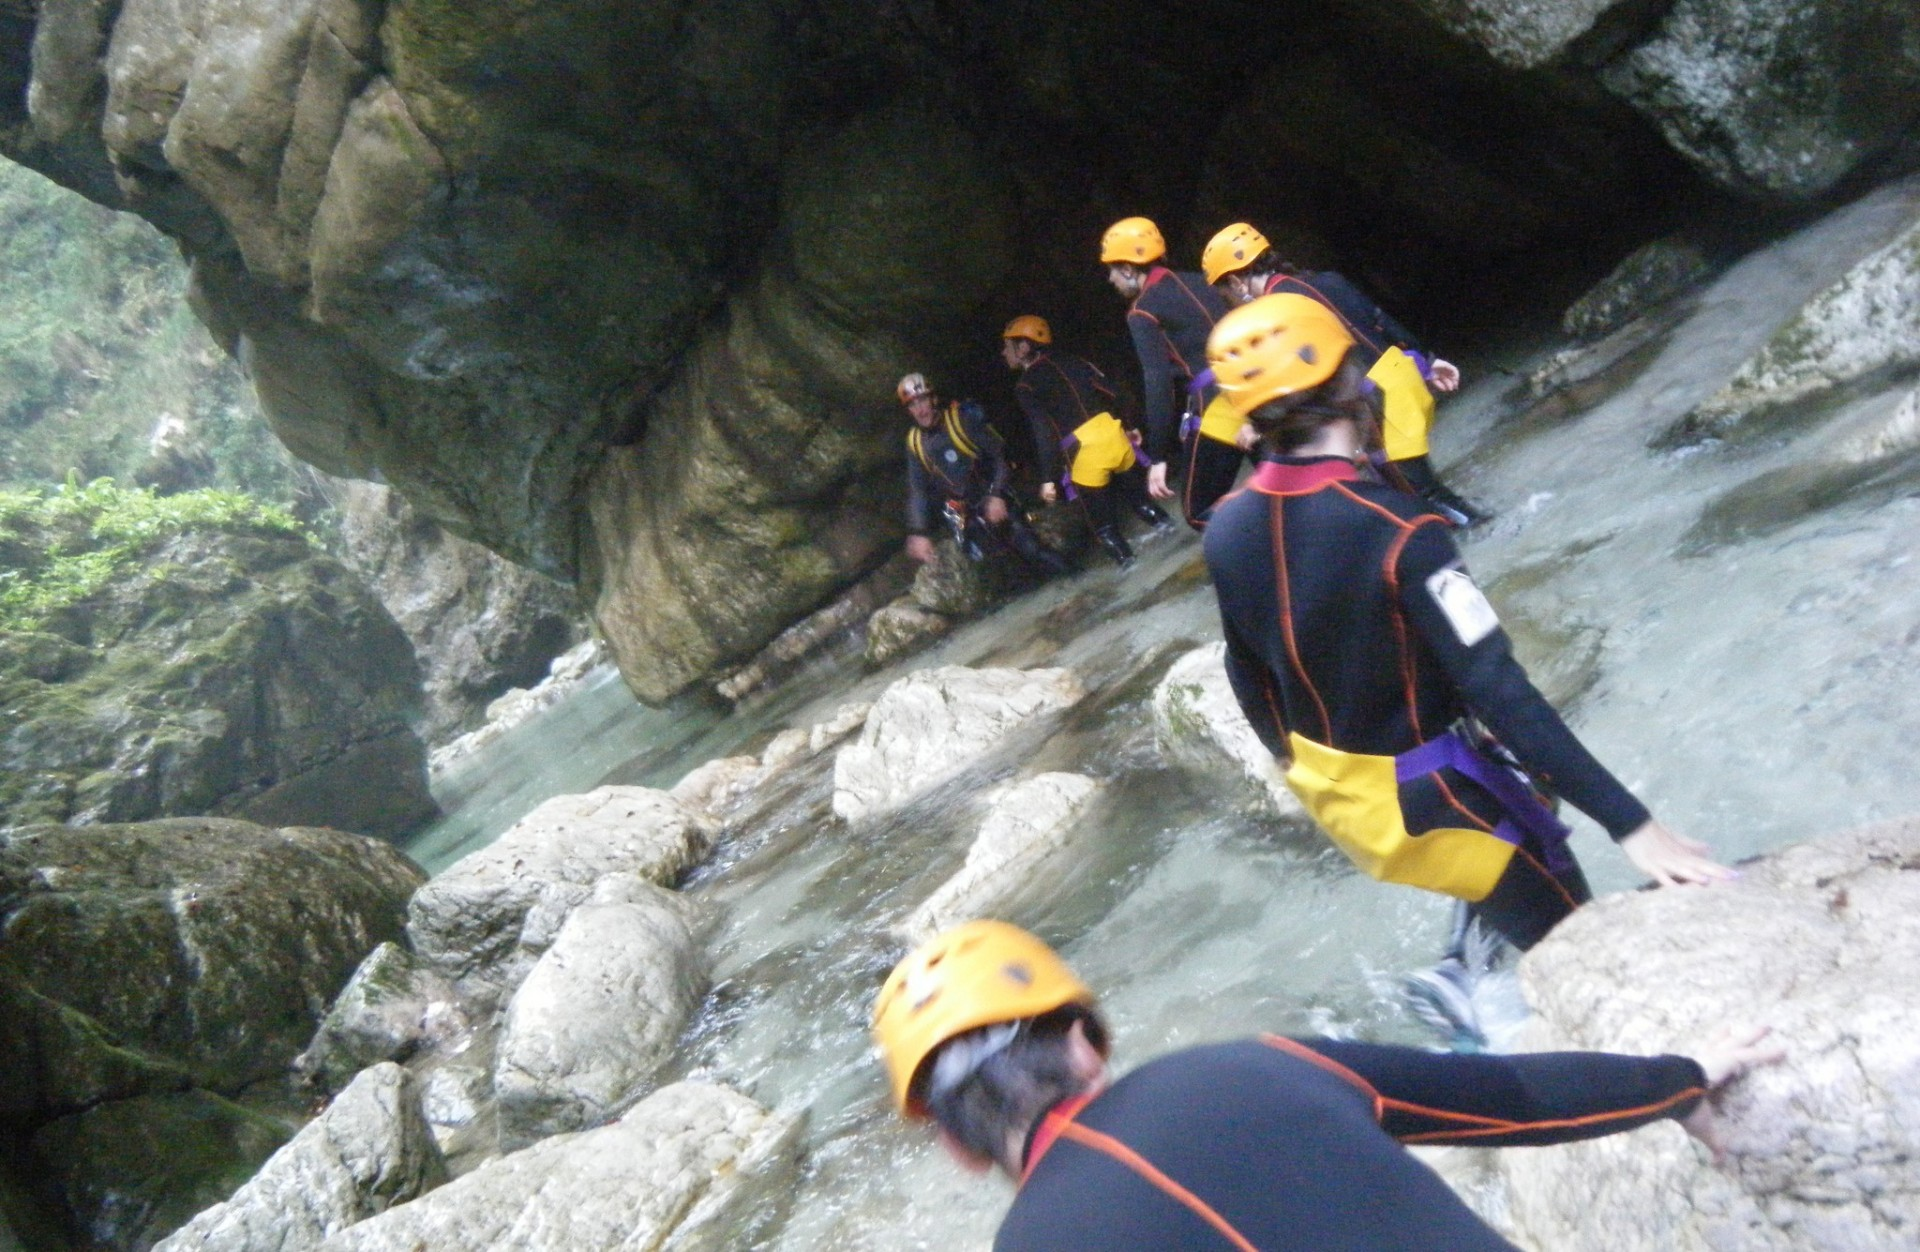 Canyoning Torrente Torna - Parco Nazionale del Cilento